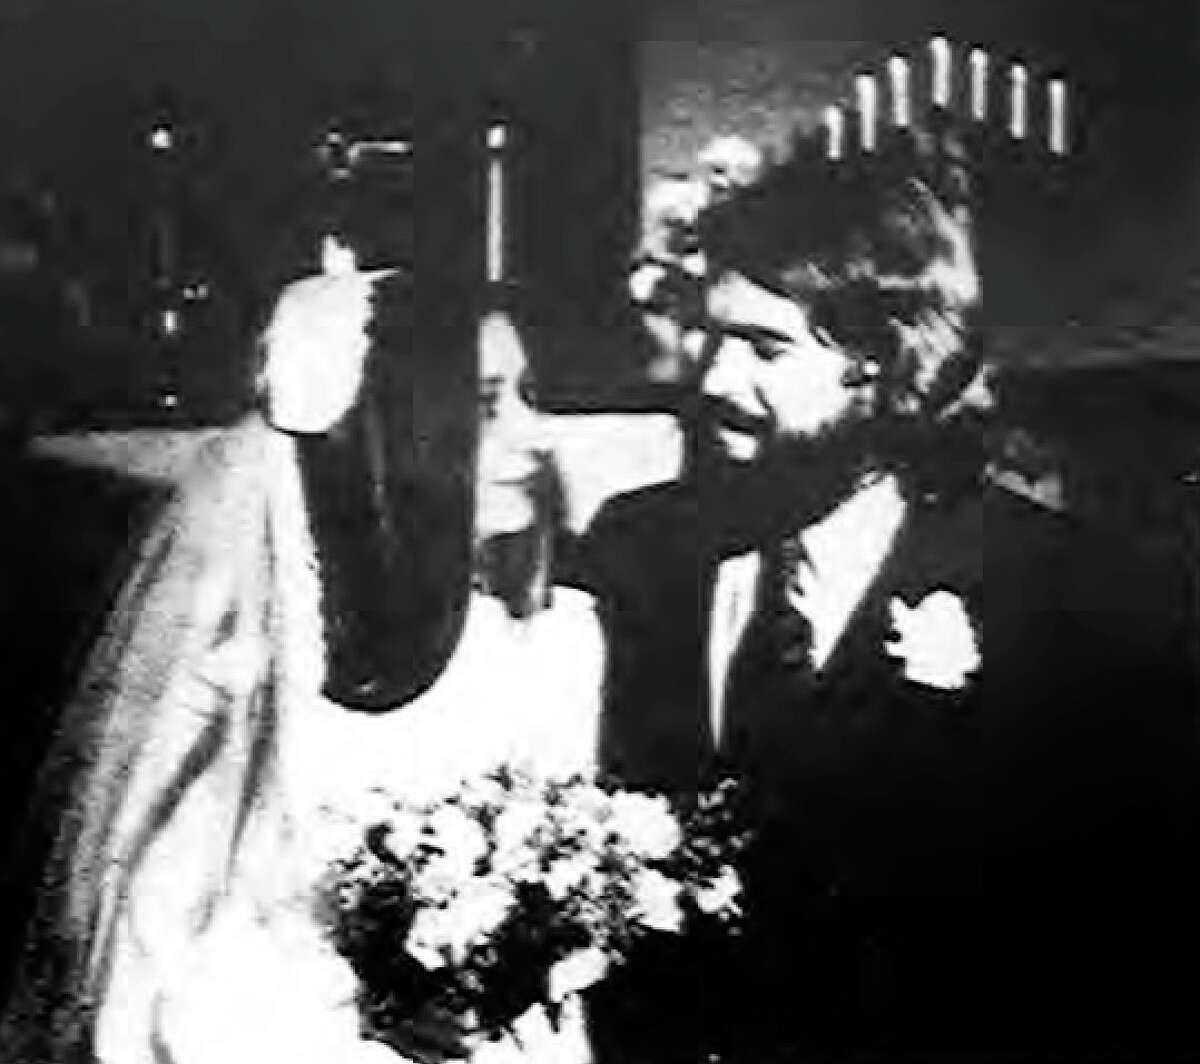 Wedding announcement photo of Lori Briggs and Michael Milks from Wednesday, Jan. 9, 1974. It was published in the Cortland Standard.